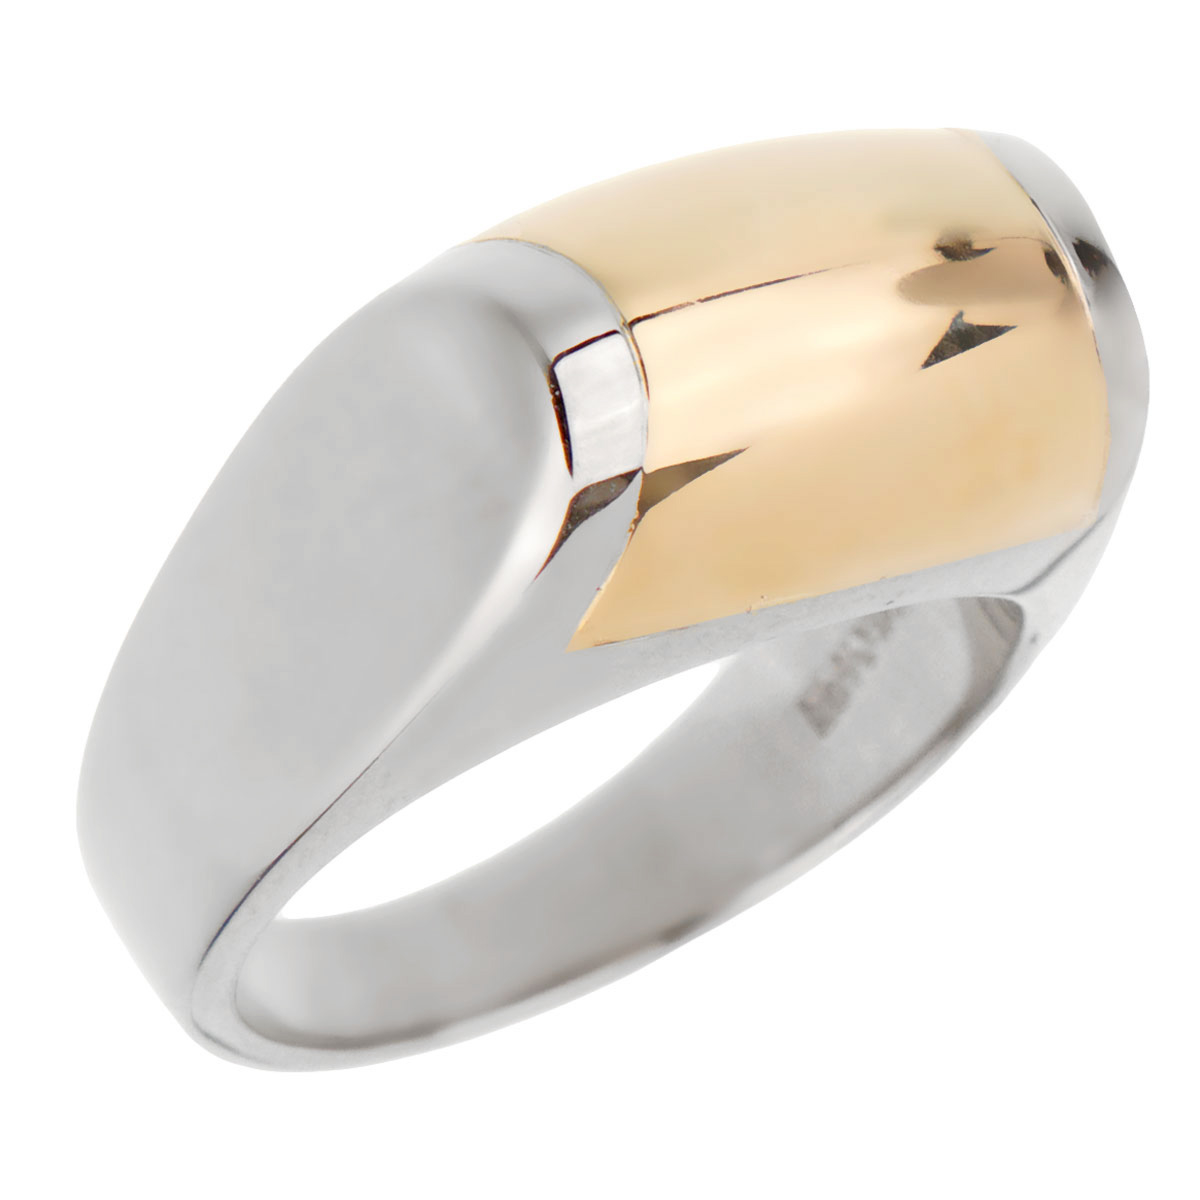 Bulgari Two Tone Gold Cocktail Ring - Bulgari Jewelry